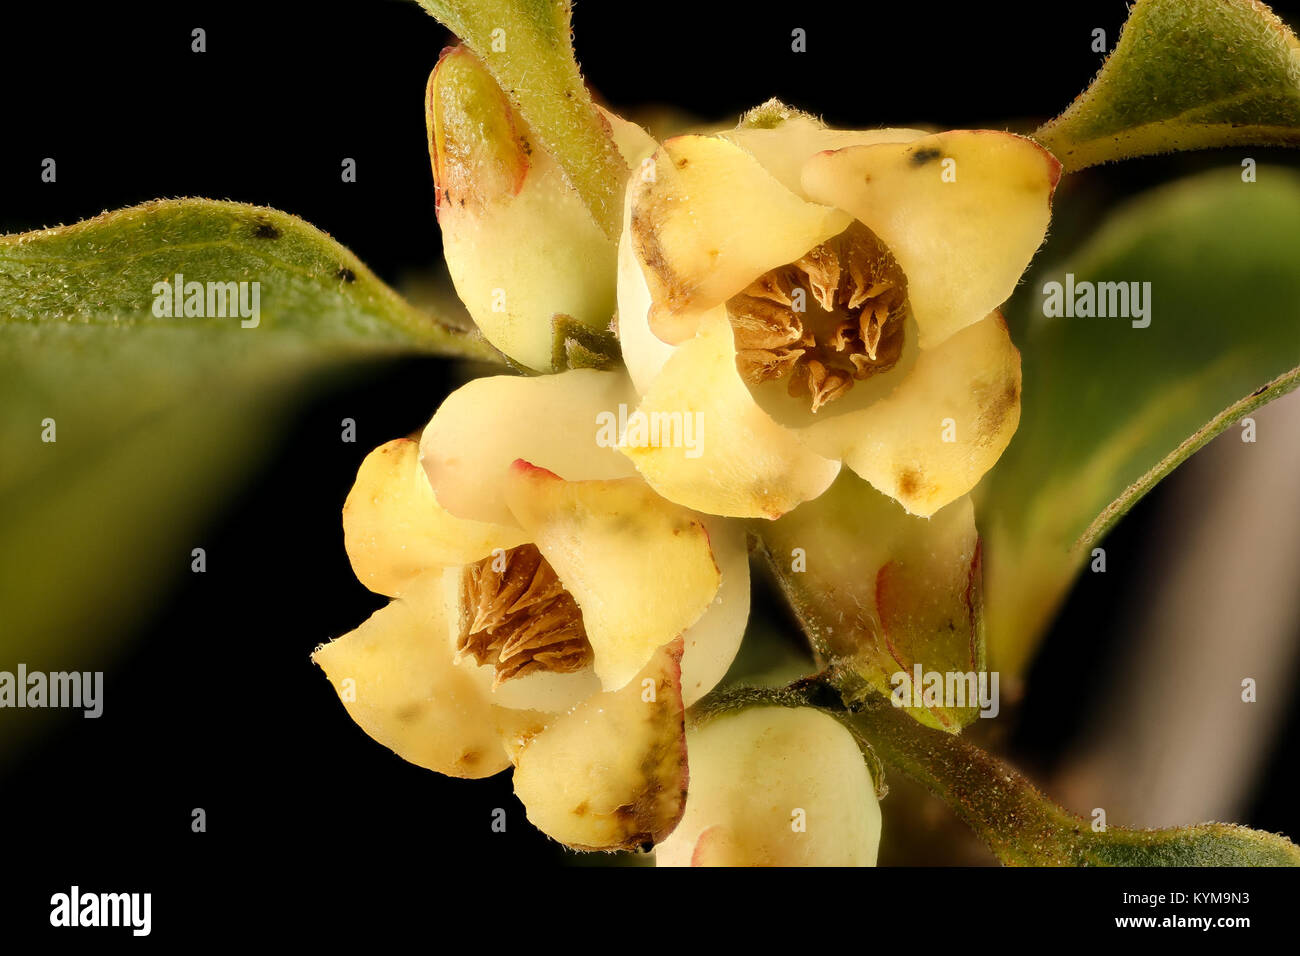 Staminate flower stock photos staminate flower stock images alamy diospyros virginiana persimmon staminate flower howard county md helen lowe 35034974653 o ccuart Choice Image